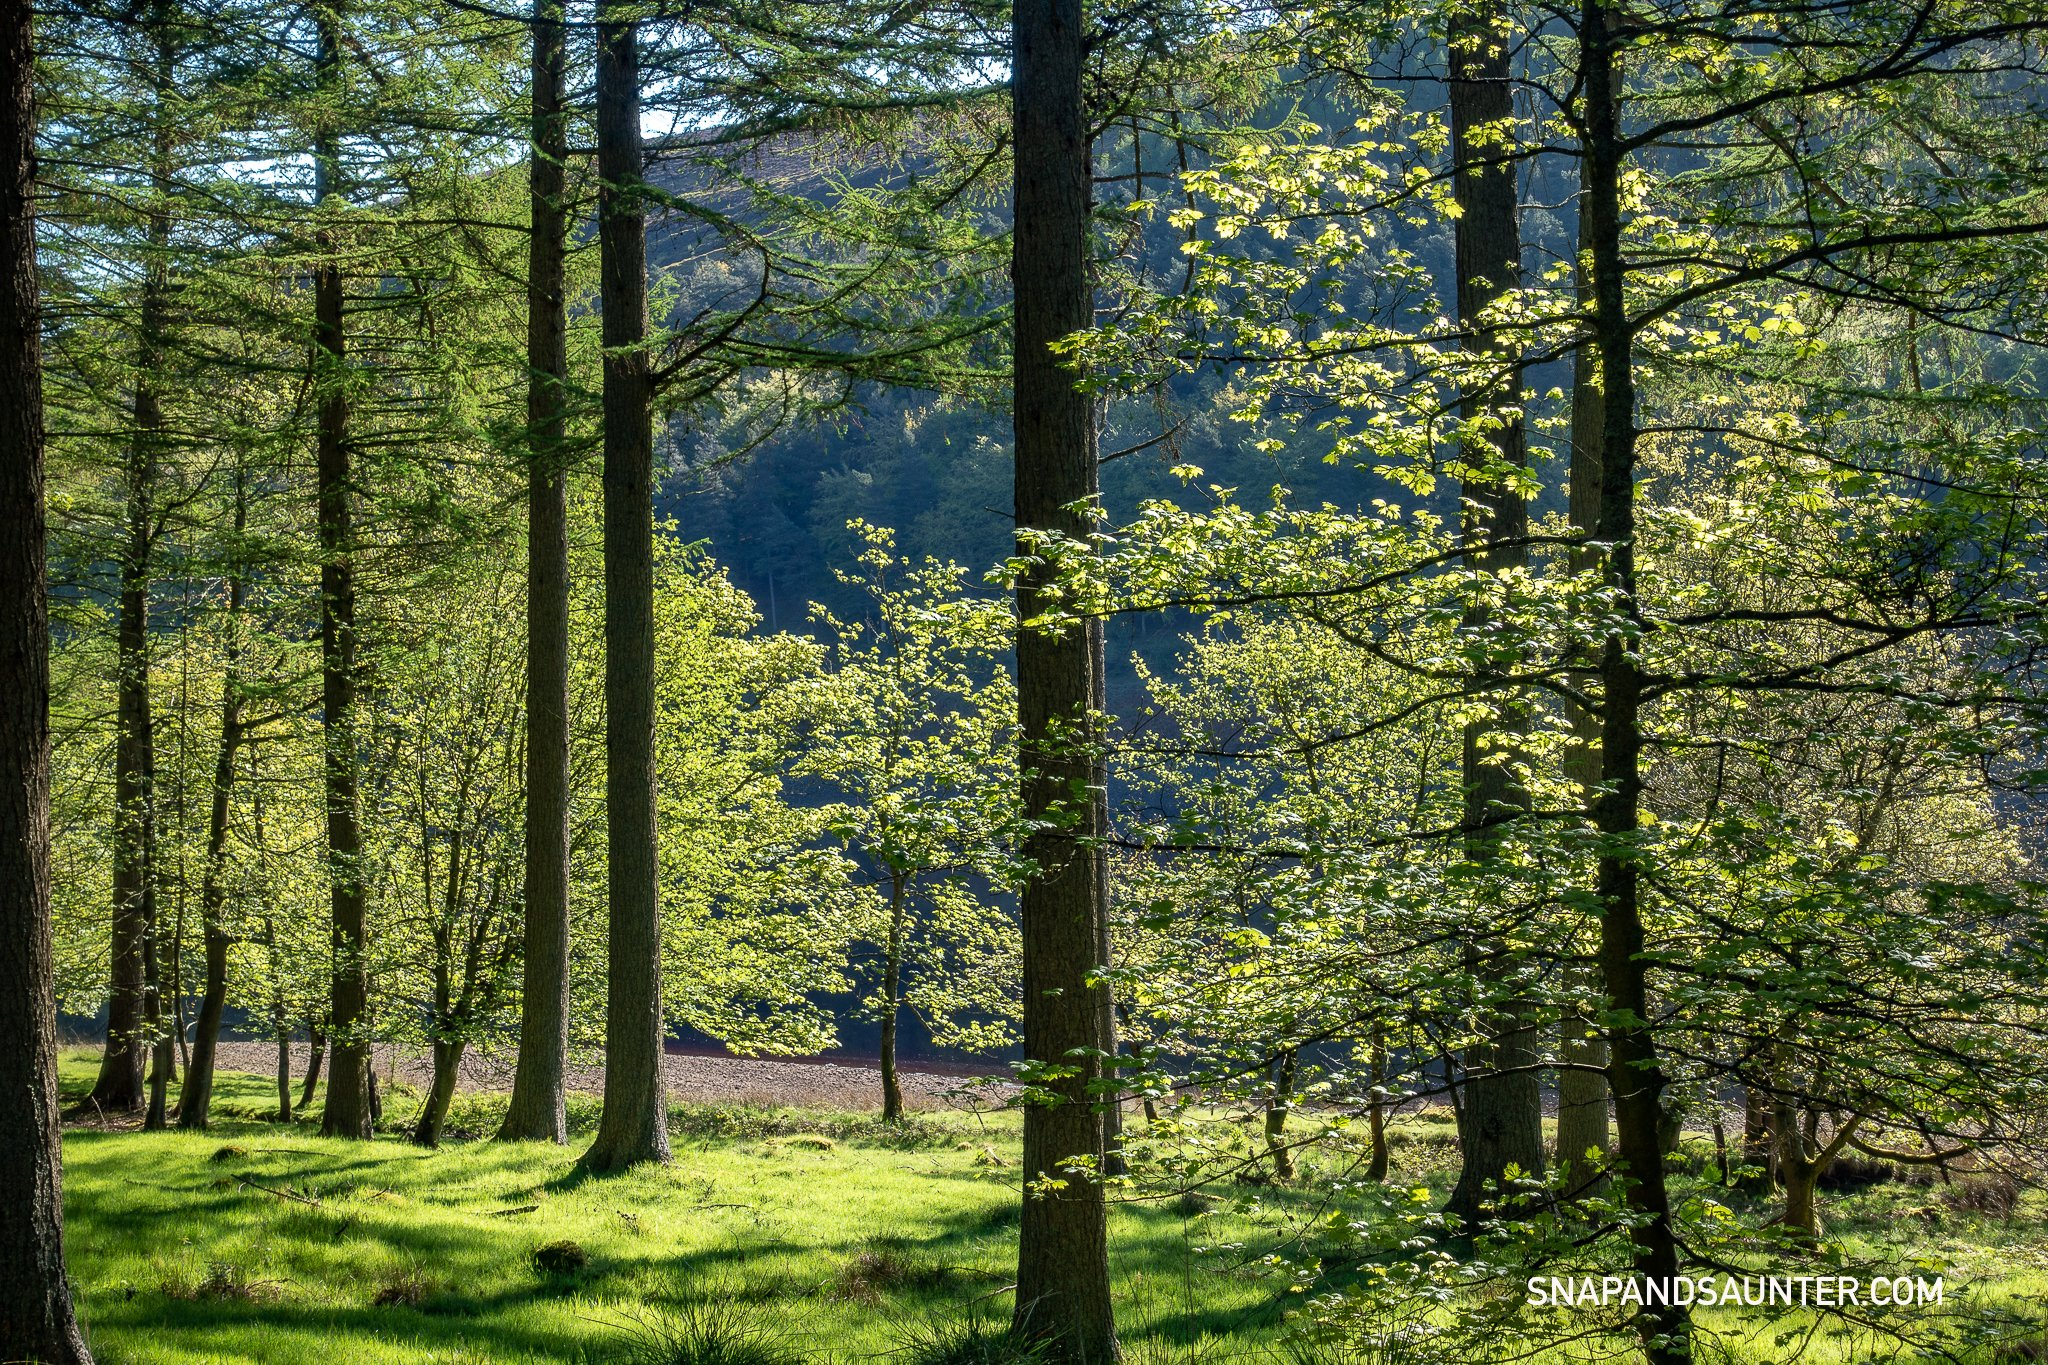 Walking through the woods in Upper Derwent Valley in Derbyshire